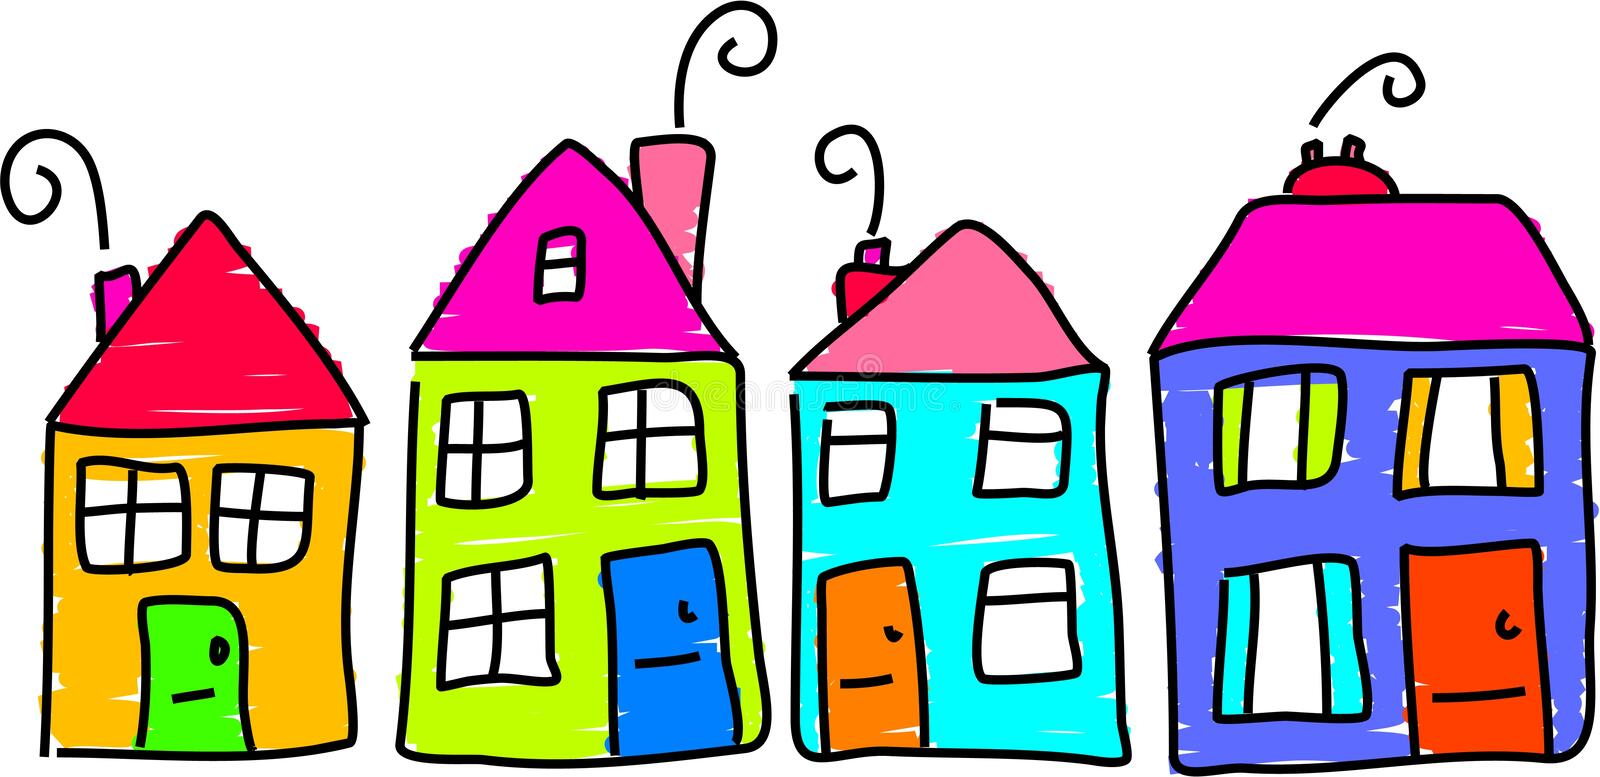 Our street. Row of houses in toddler drawing style